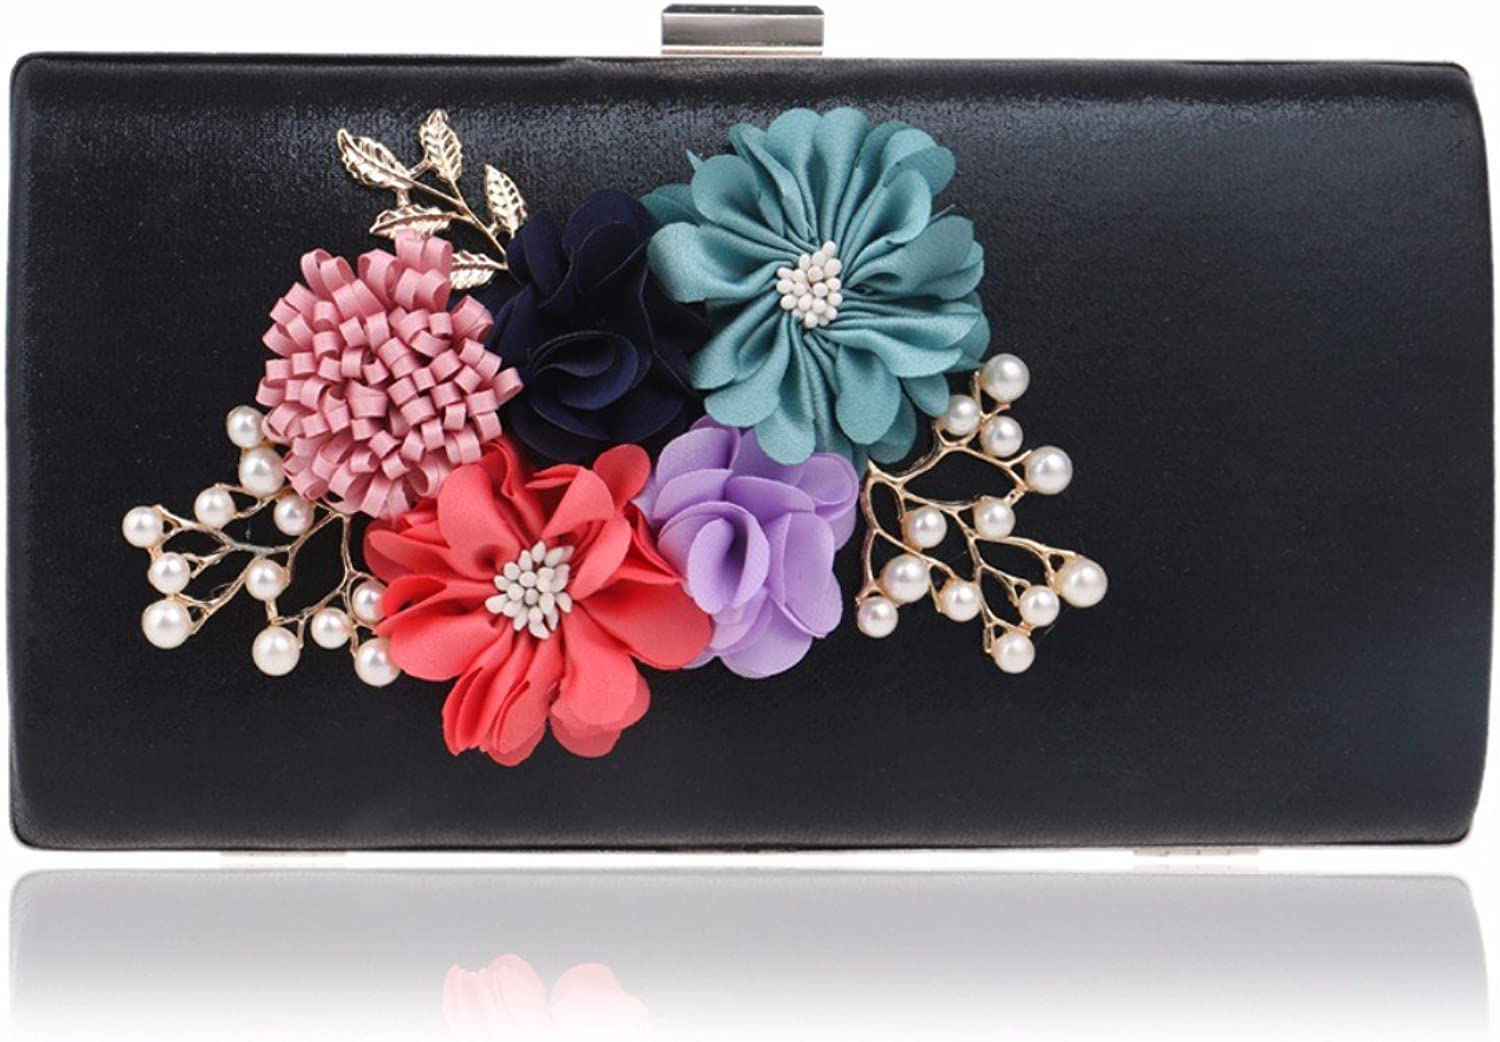 XJTNLB European and American New Flower Evening Dress Ladies Bag Luxury Dinner Clutch,Black